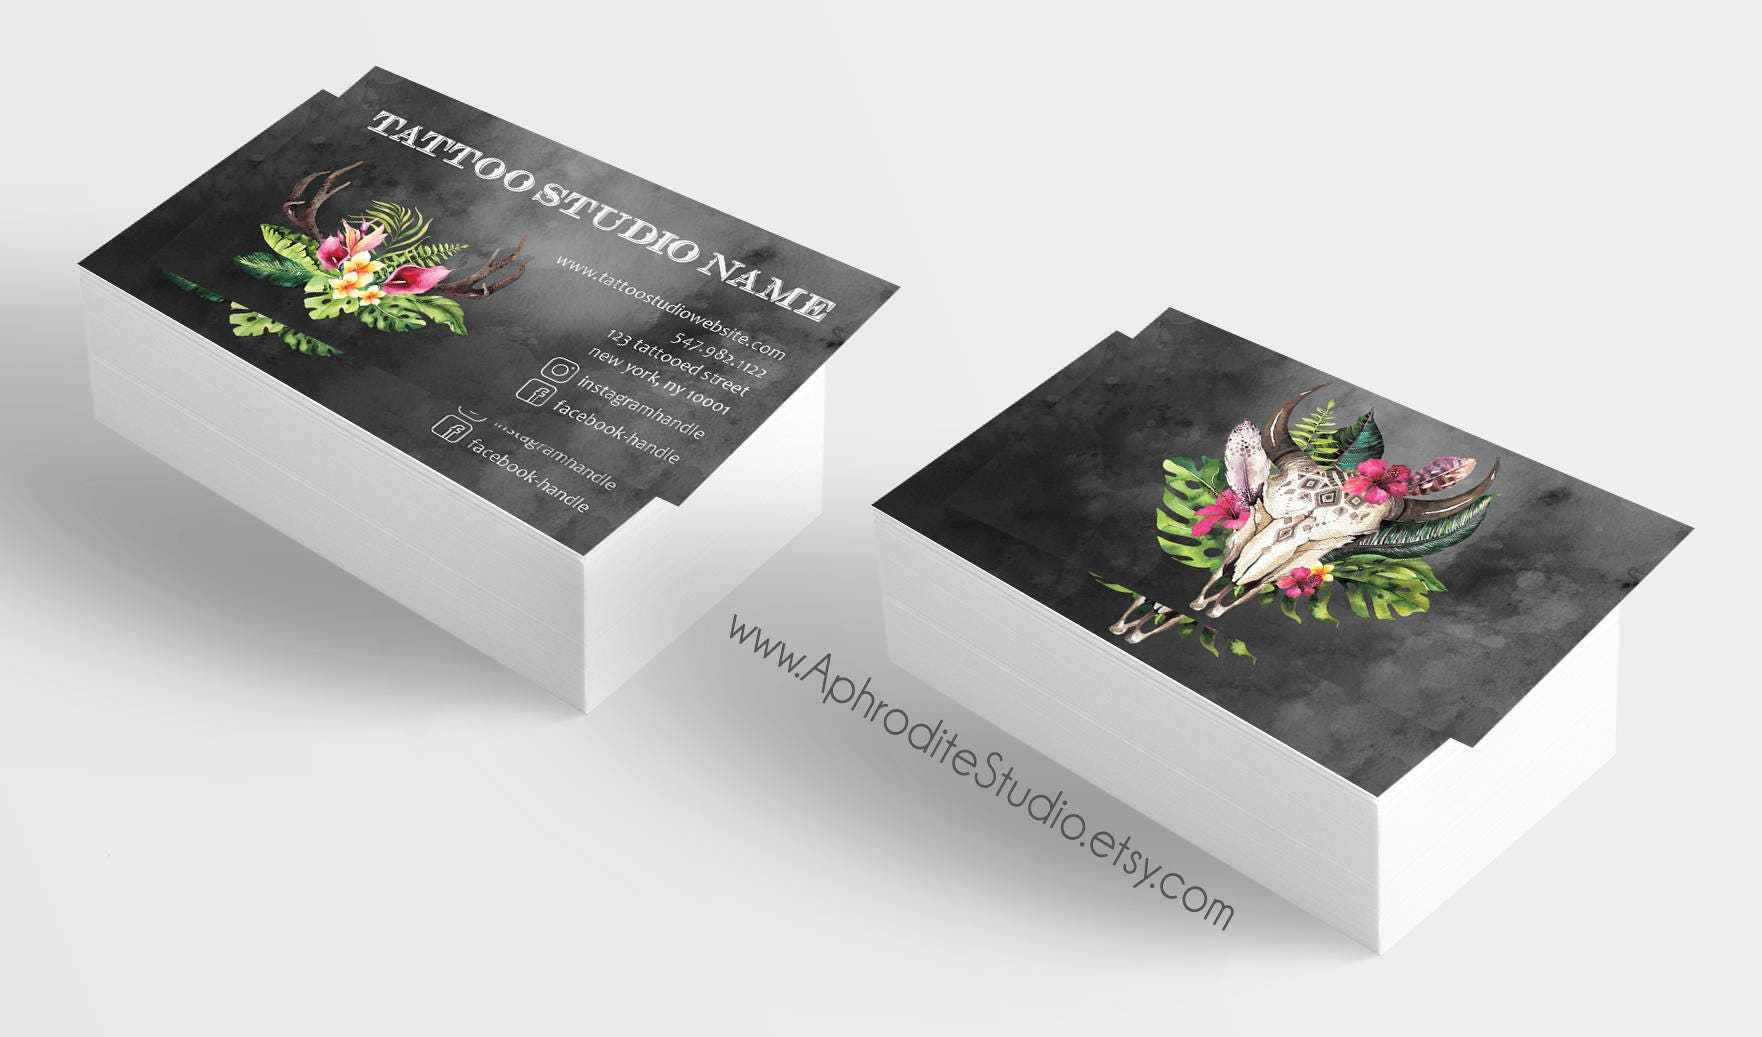 Tattoo business cards - Skull business cards - Printable business ...